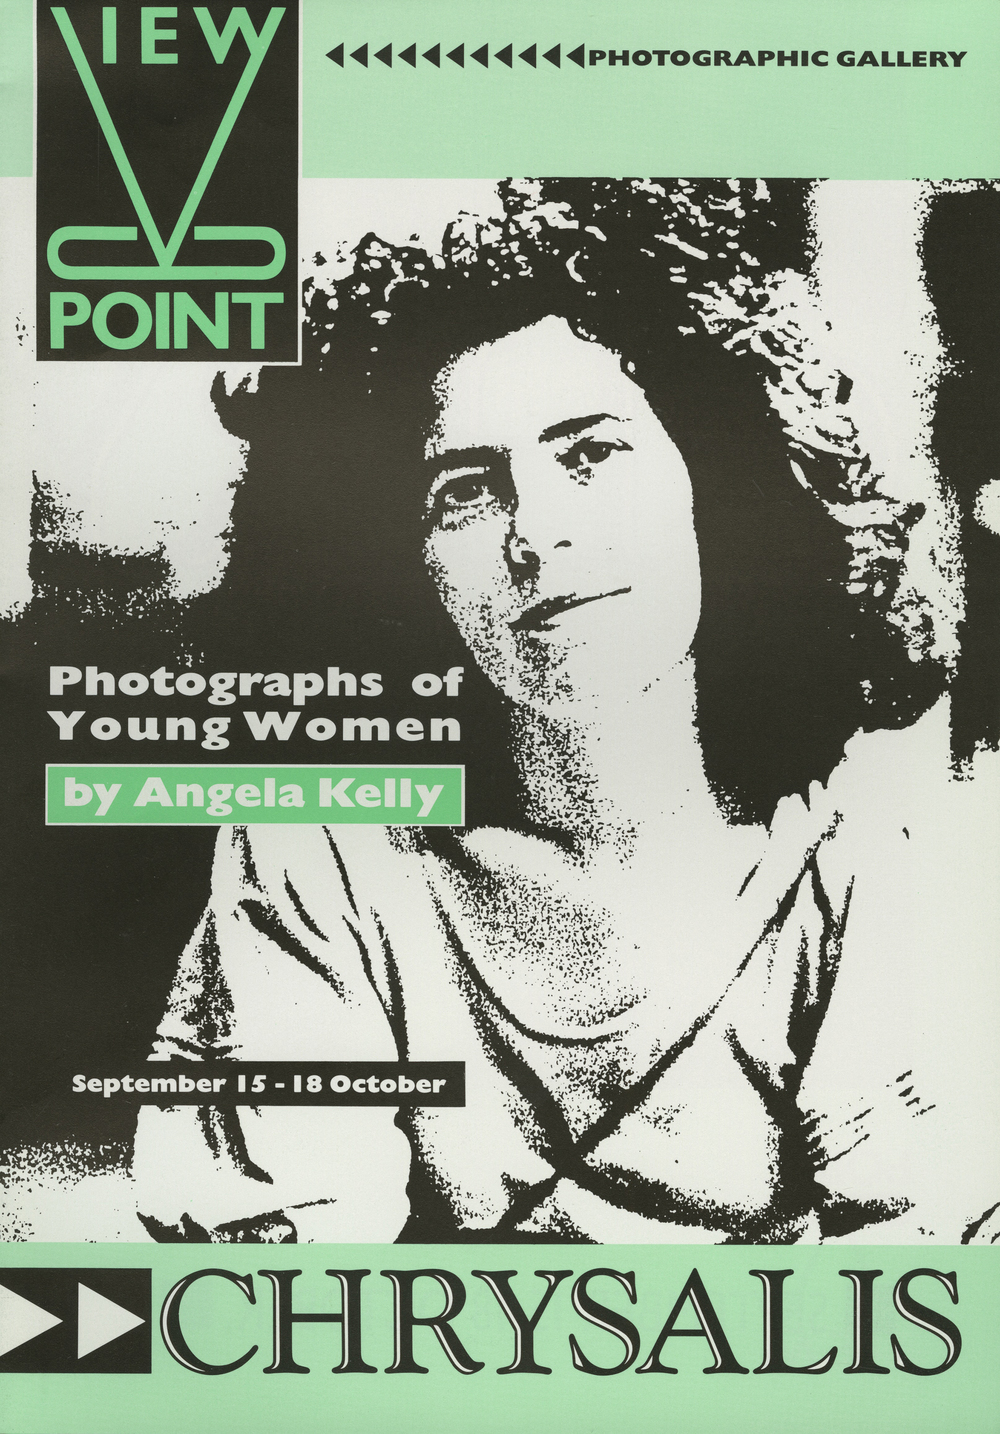 Exhibition Catalog_Viewpoint Gallery Interview _Neil Wilkie_Chrysalis.jpg